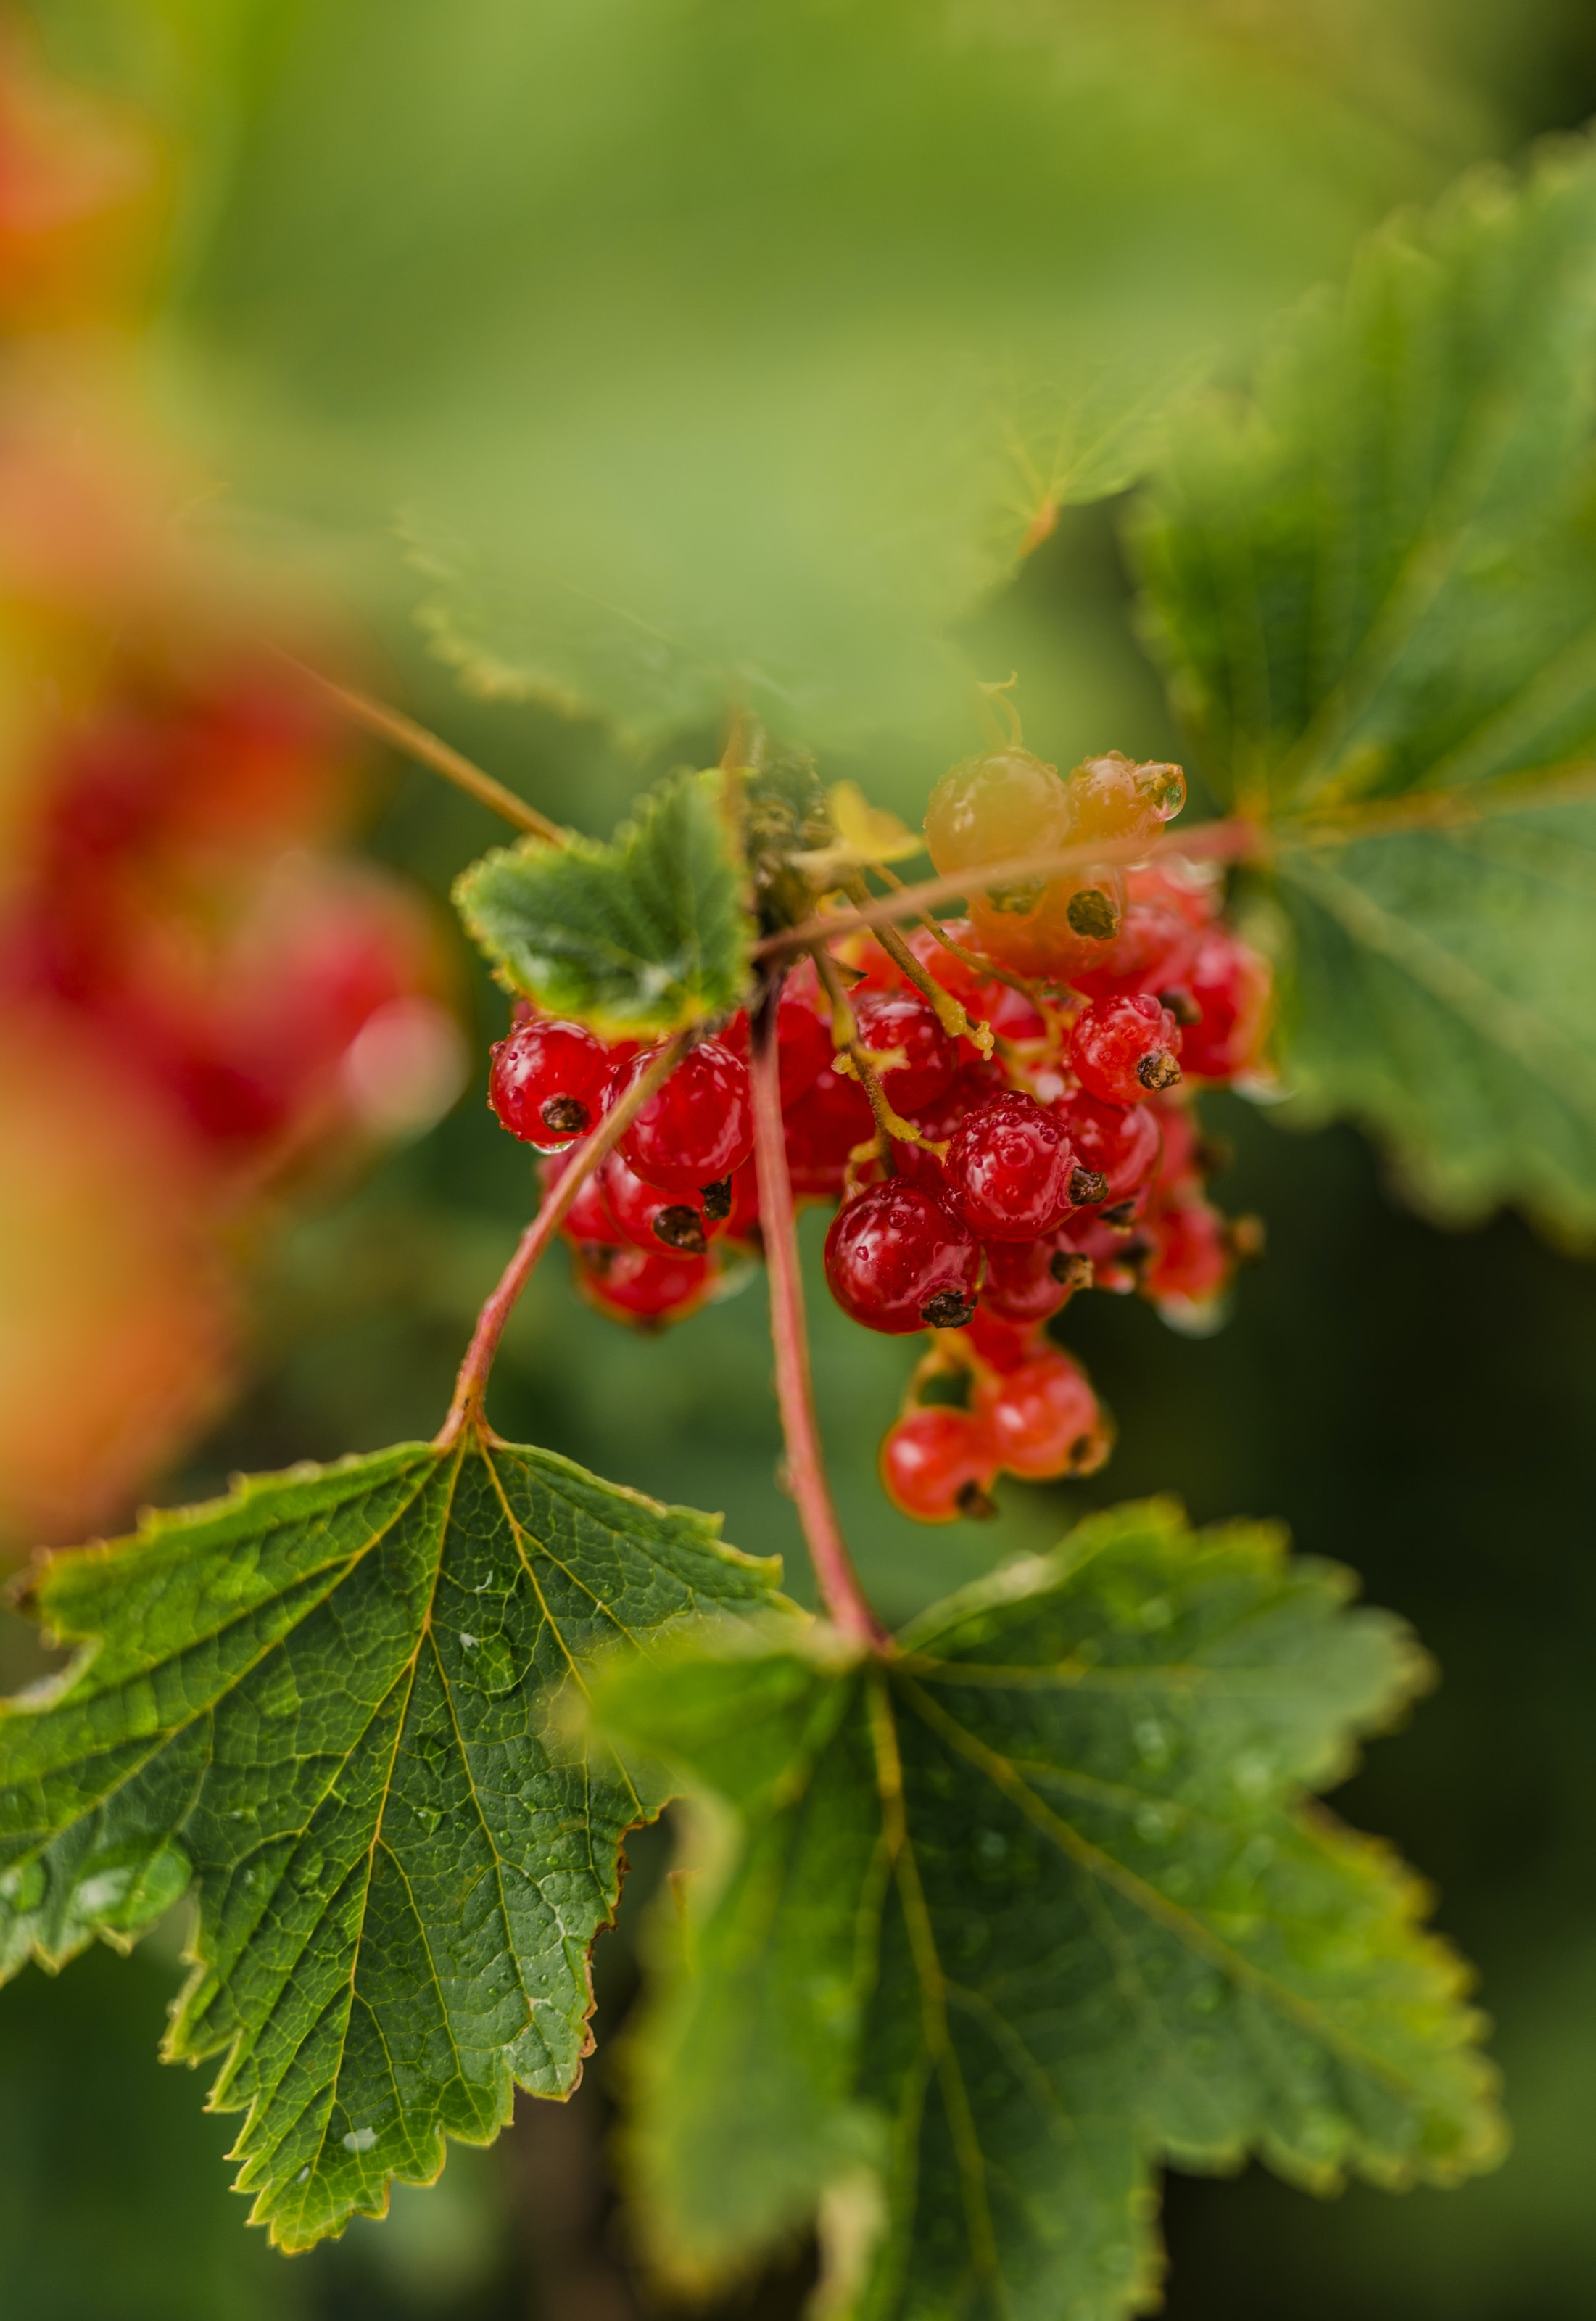 shallow focus photography of round red fruits